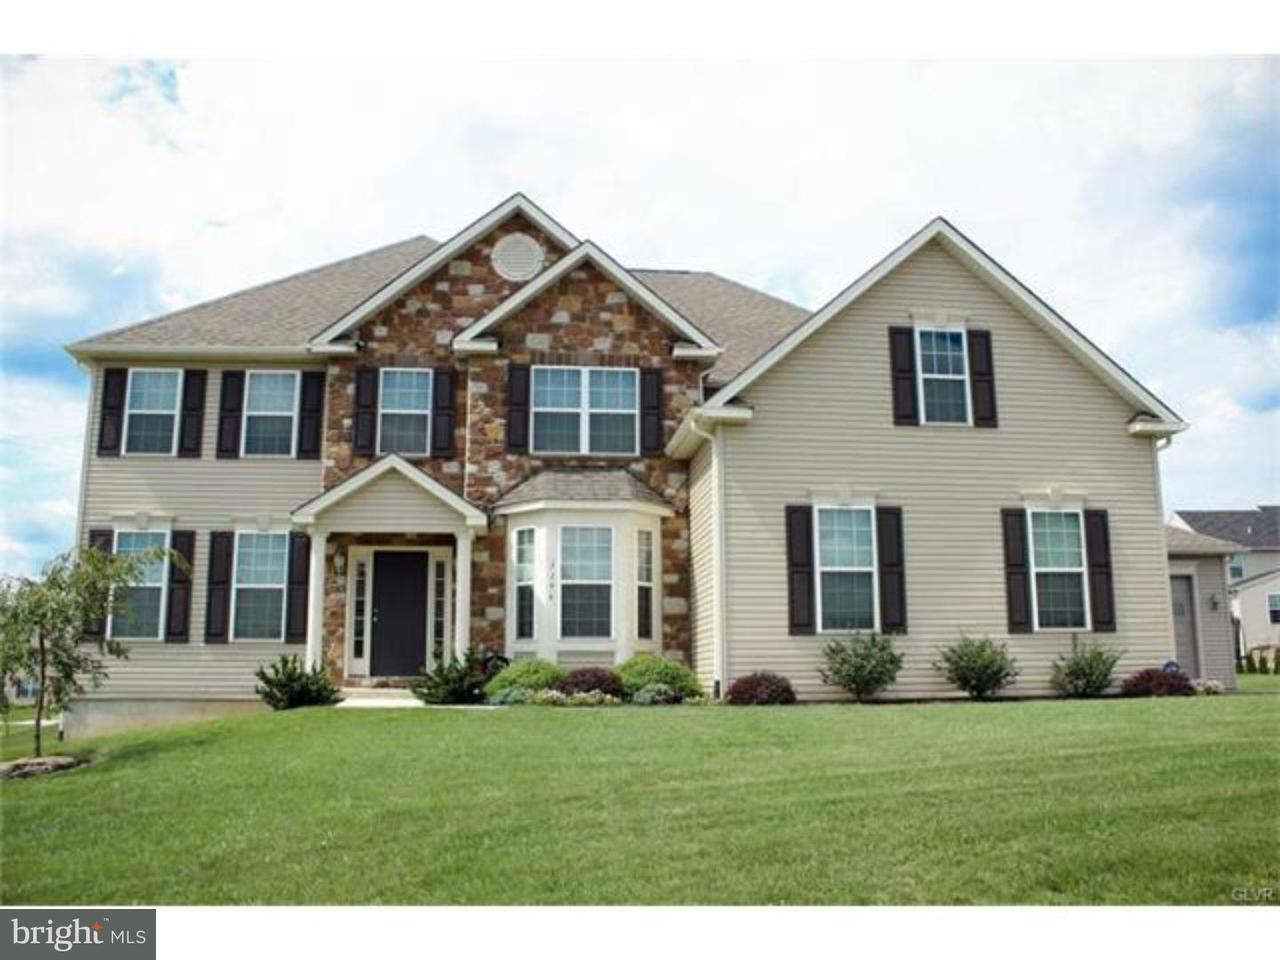 Single Family Home for Sale at 1196 LEAFWING Place Macungie, Pennsylvania 18031 United States